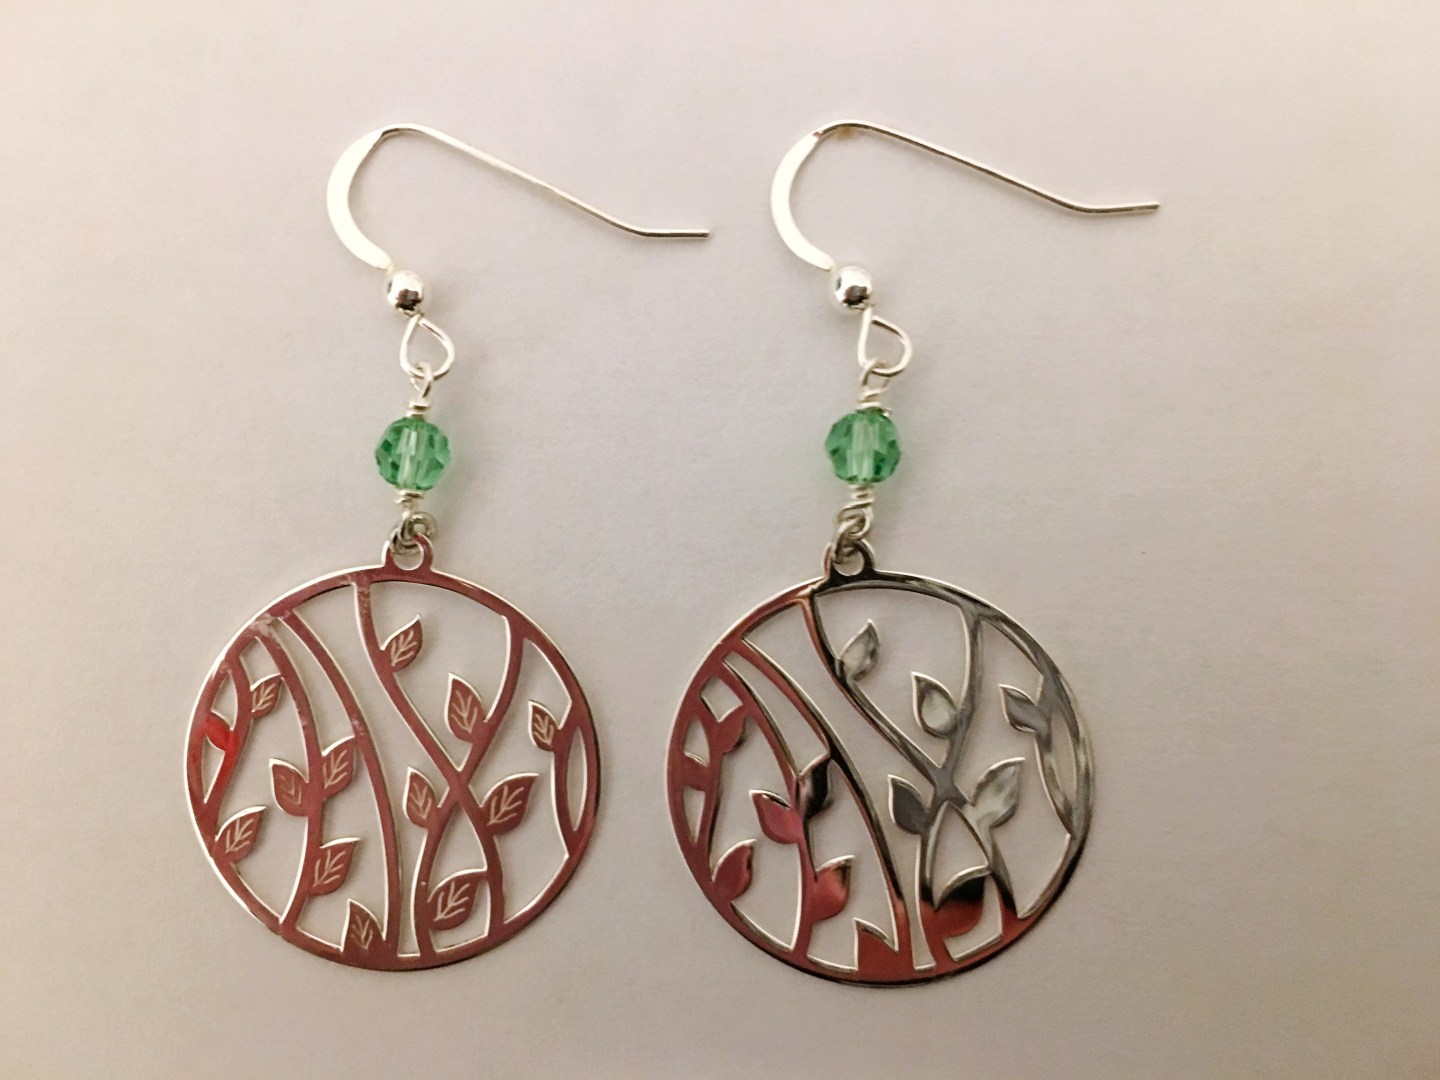 The sterling silver 'bamboo' drop earrings from House of Silver. They're for pierced ears, with fishhooks and a small drop with a green gem. Below this is the circle with a cut out leaf pattern design.